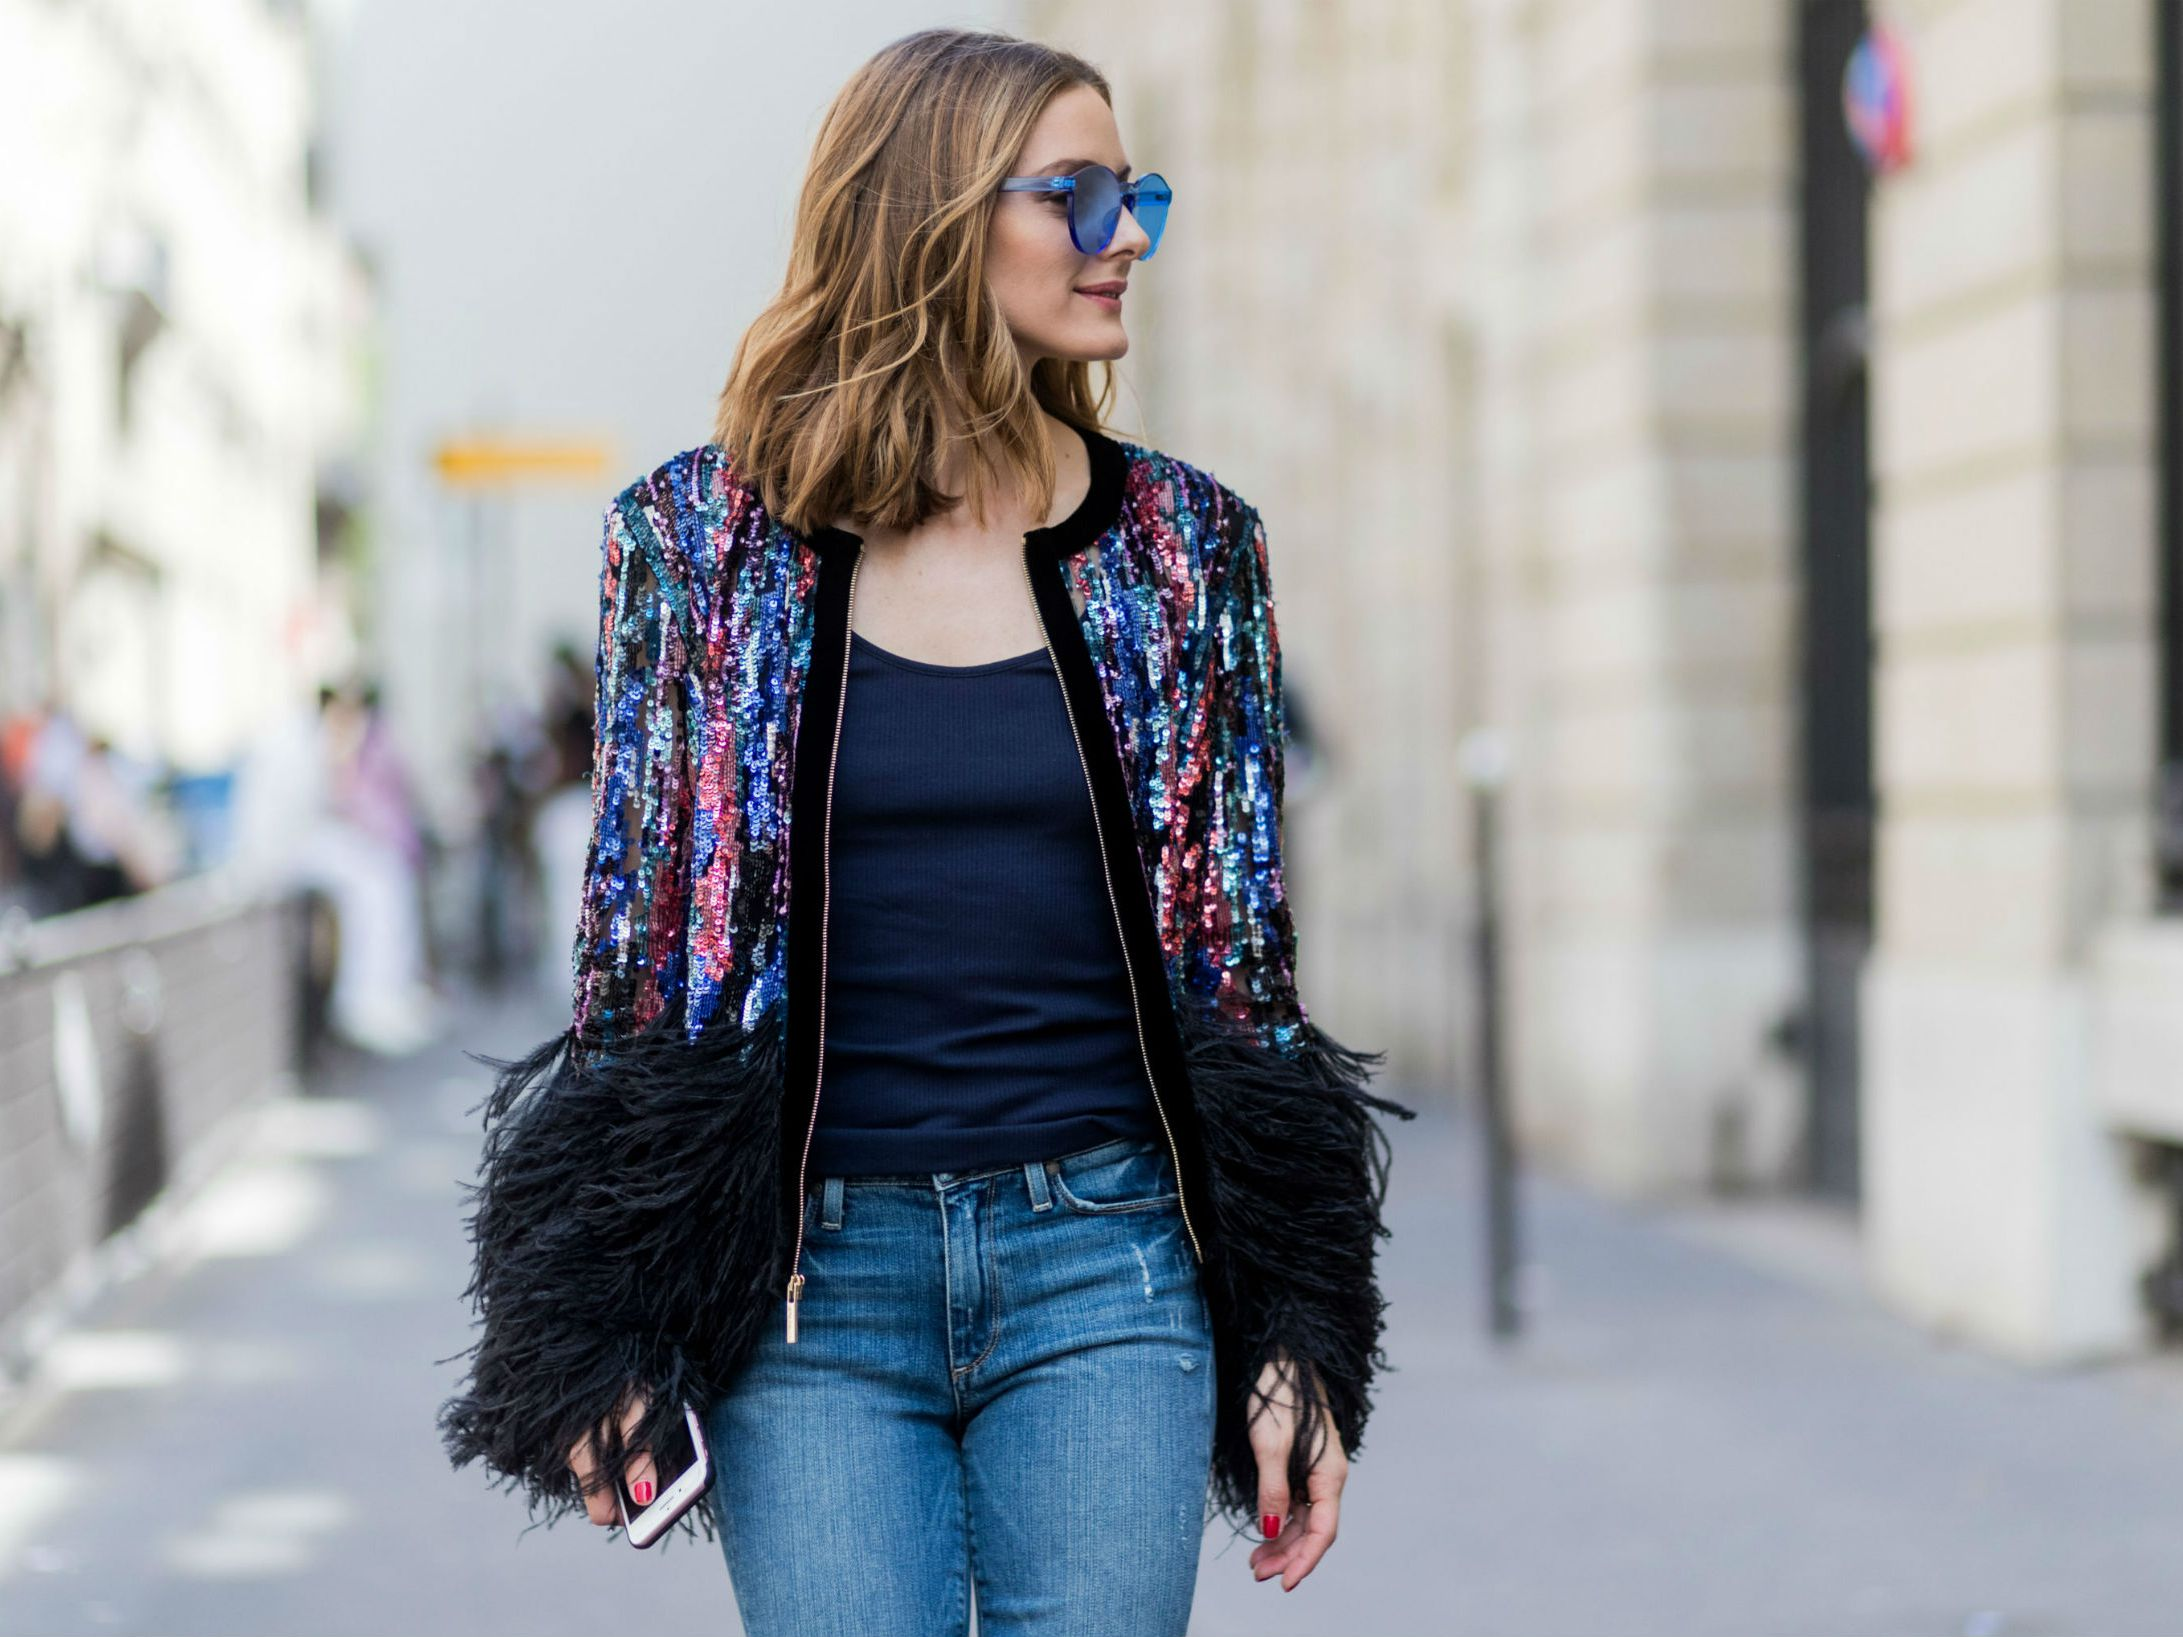 6f5984ded French Women Style - How to Wear Jeans Like a Parisian